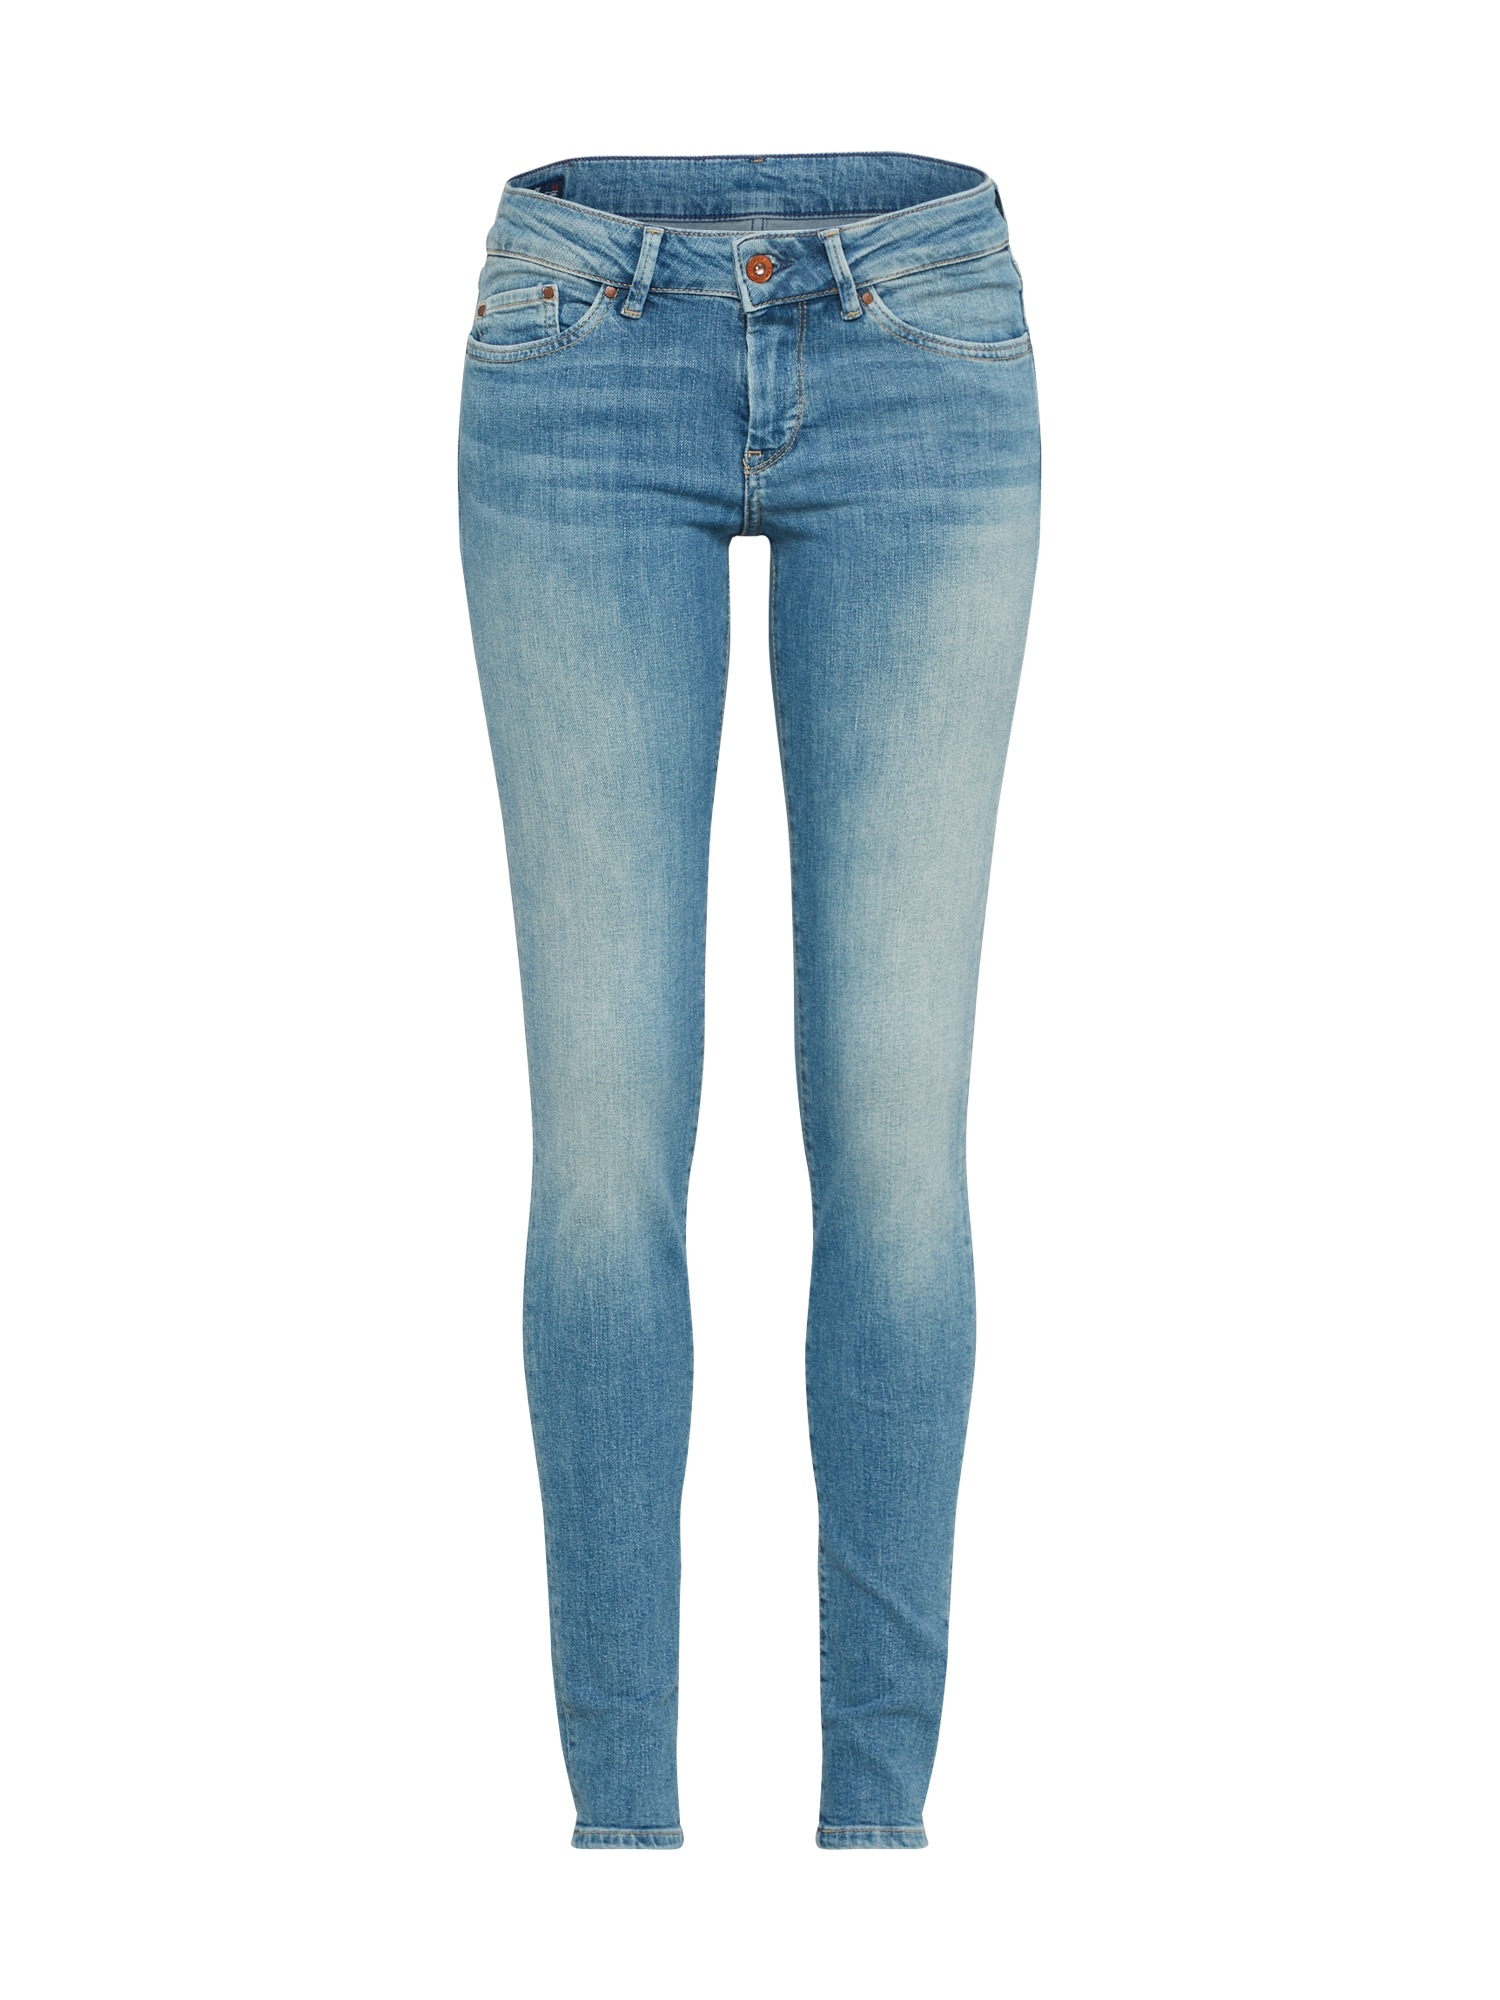 Pepe Jeans Dames Jeans Pixie lichtblauw